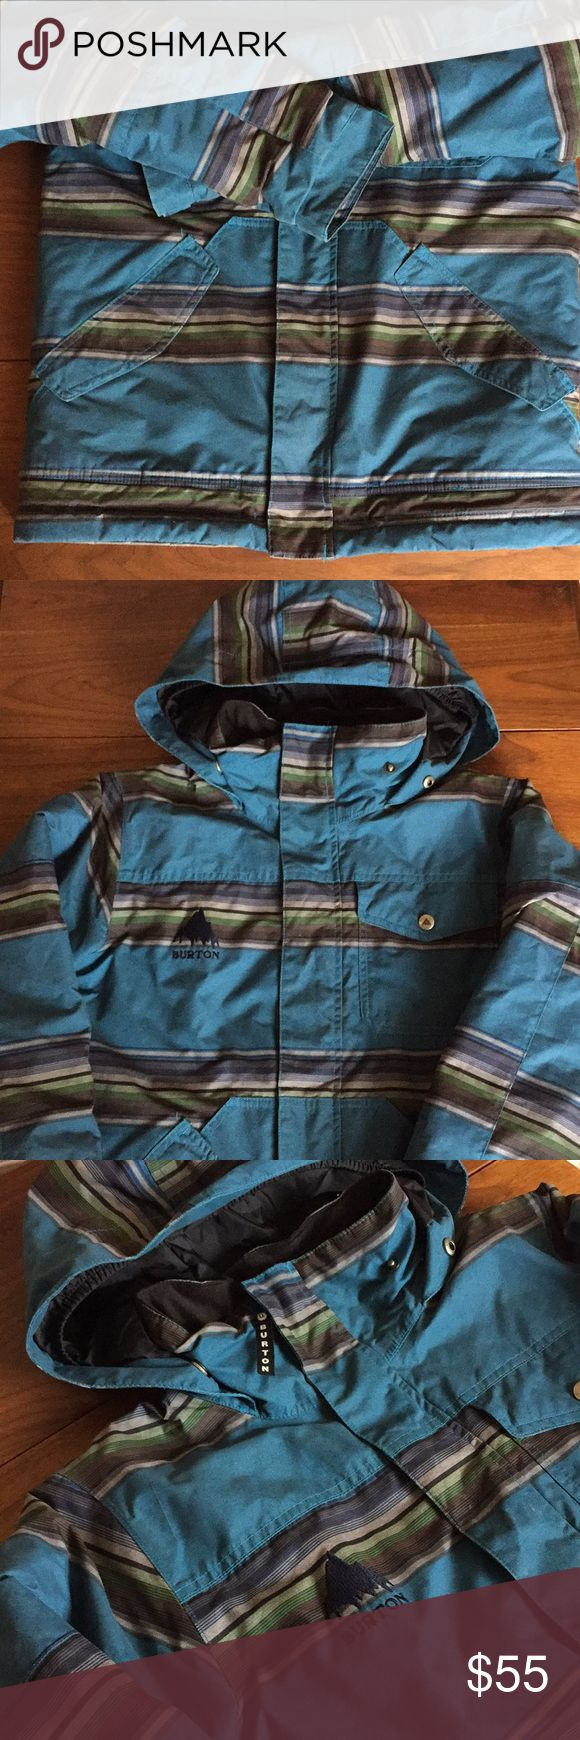 Burton Dry Ride Snowboarding Jacket size Medium Burton Dry Ride Snowboarding Jacket size Medium in great condition!!! Burton Jackets & Coats